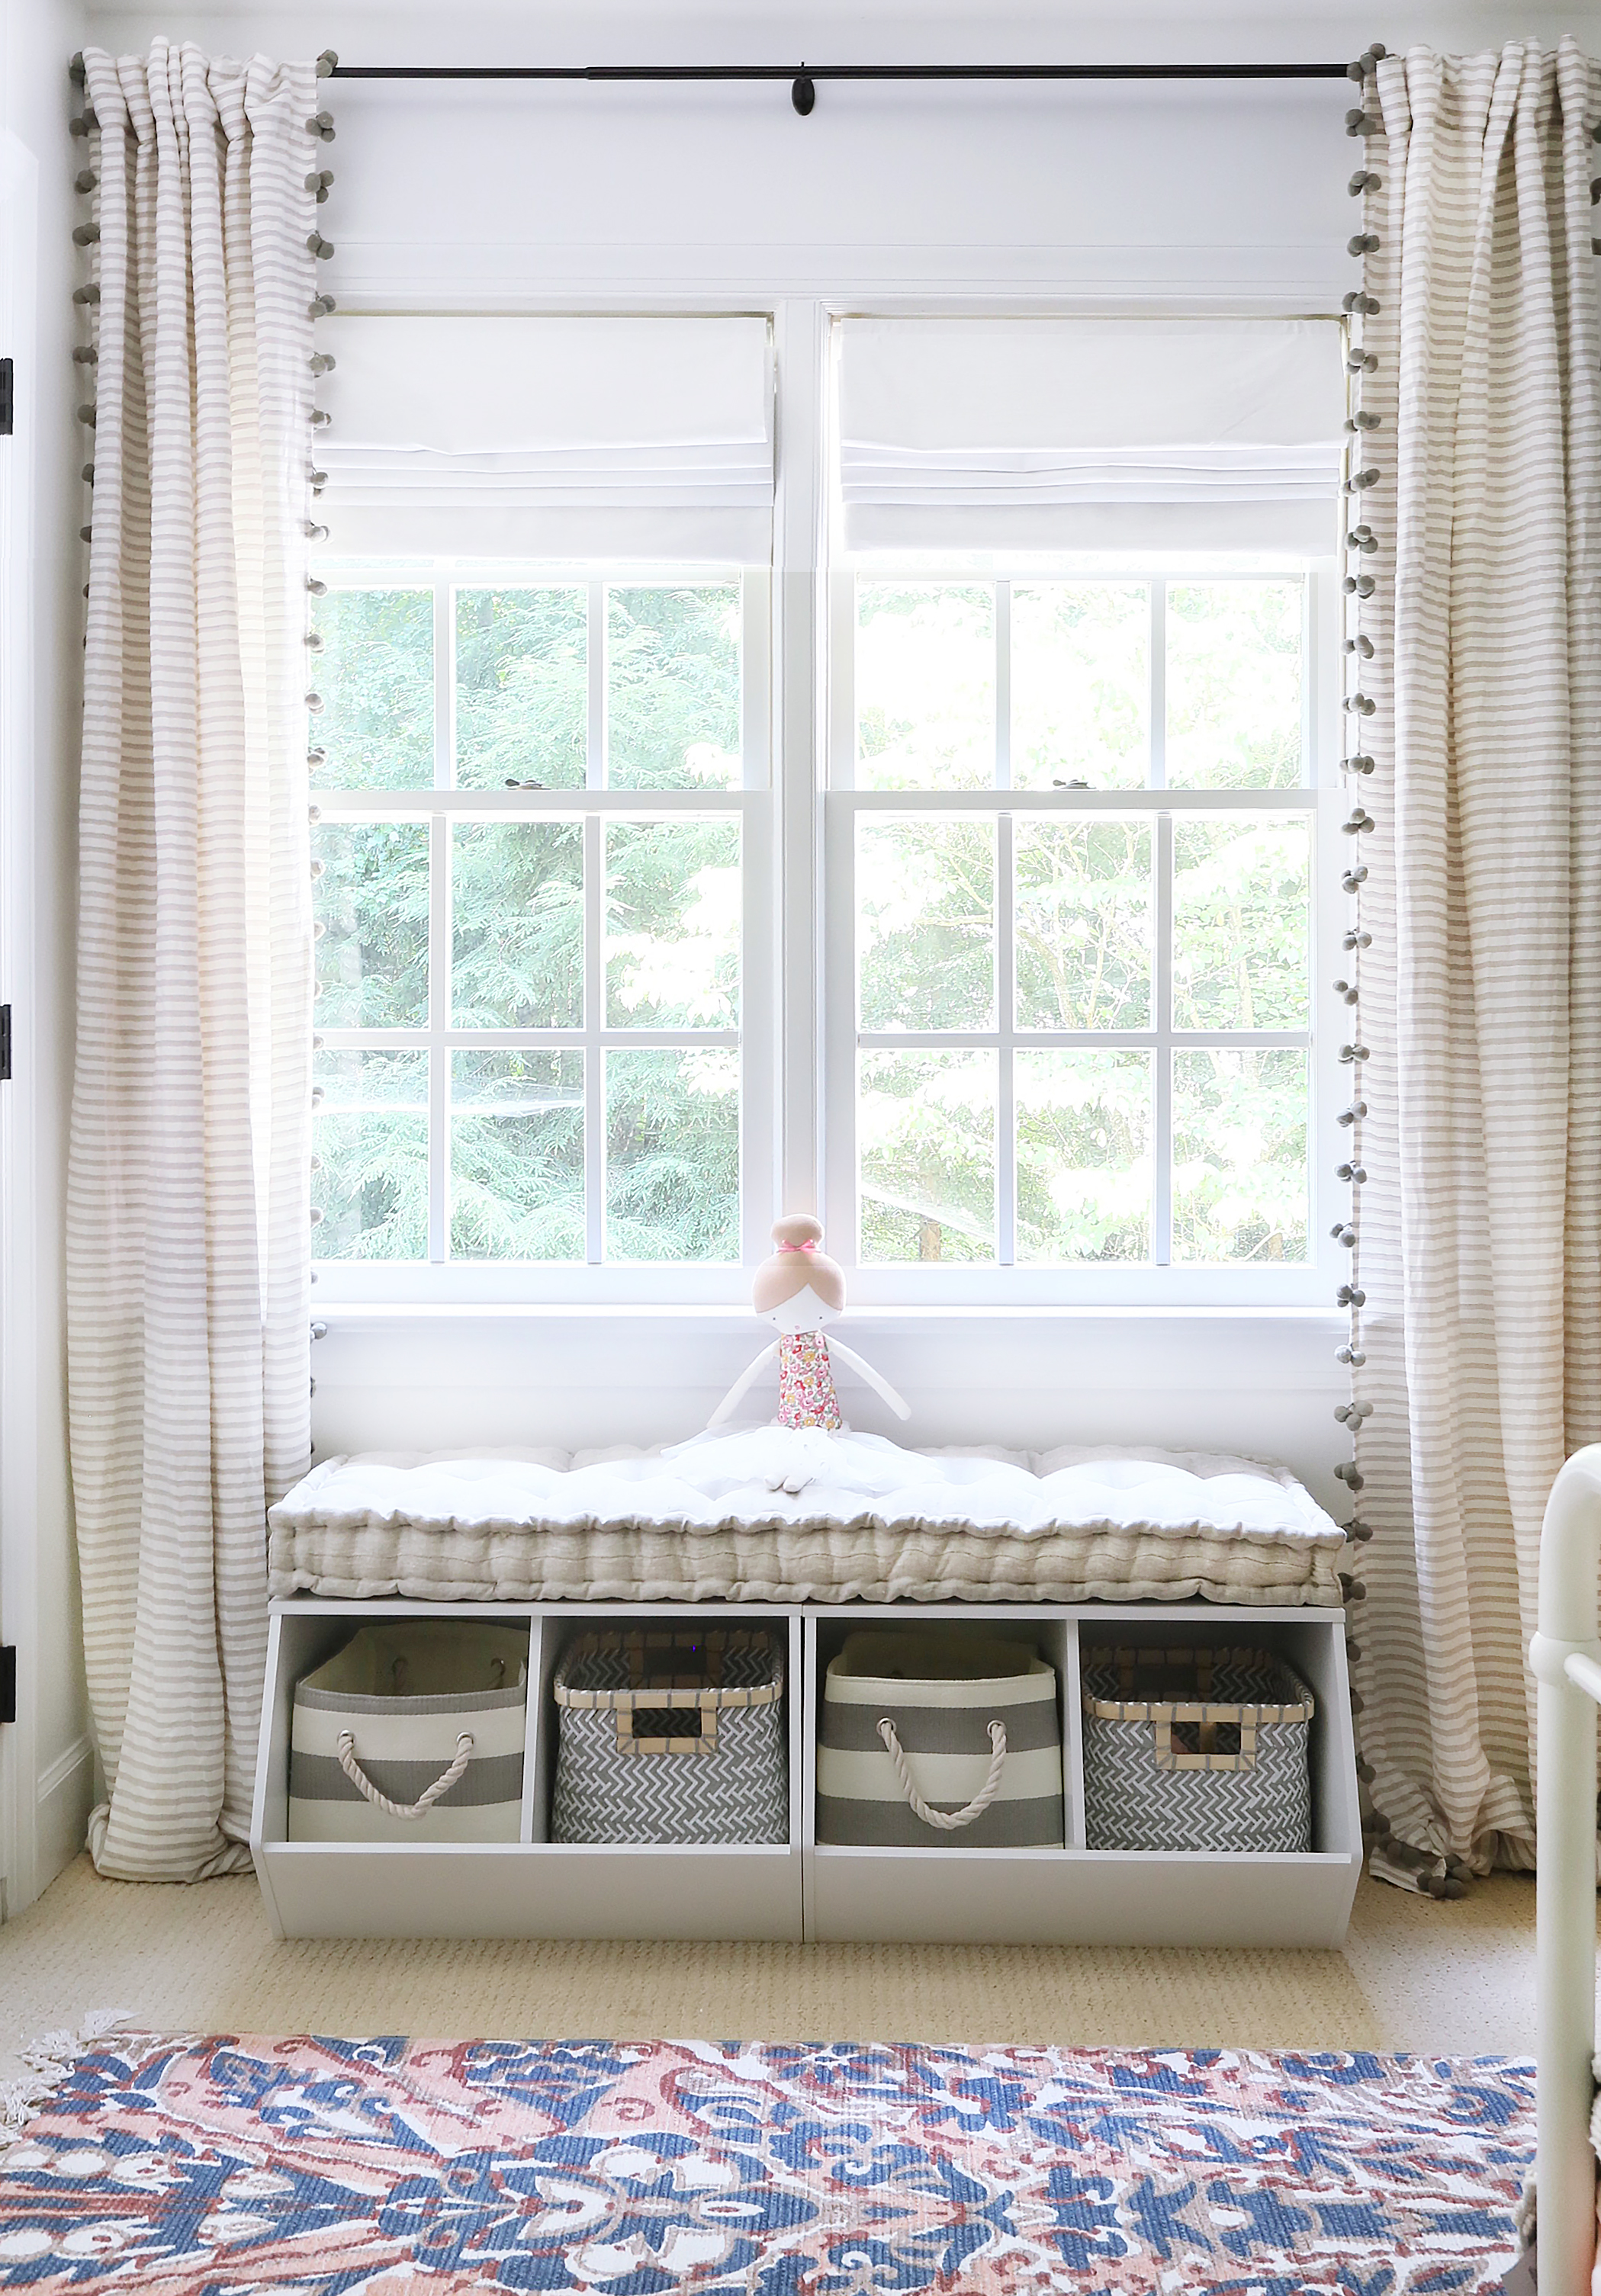 Window Seat with Storage with Tassel Curtains